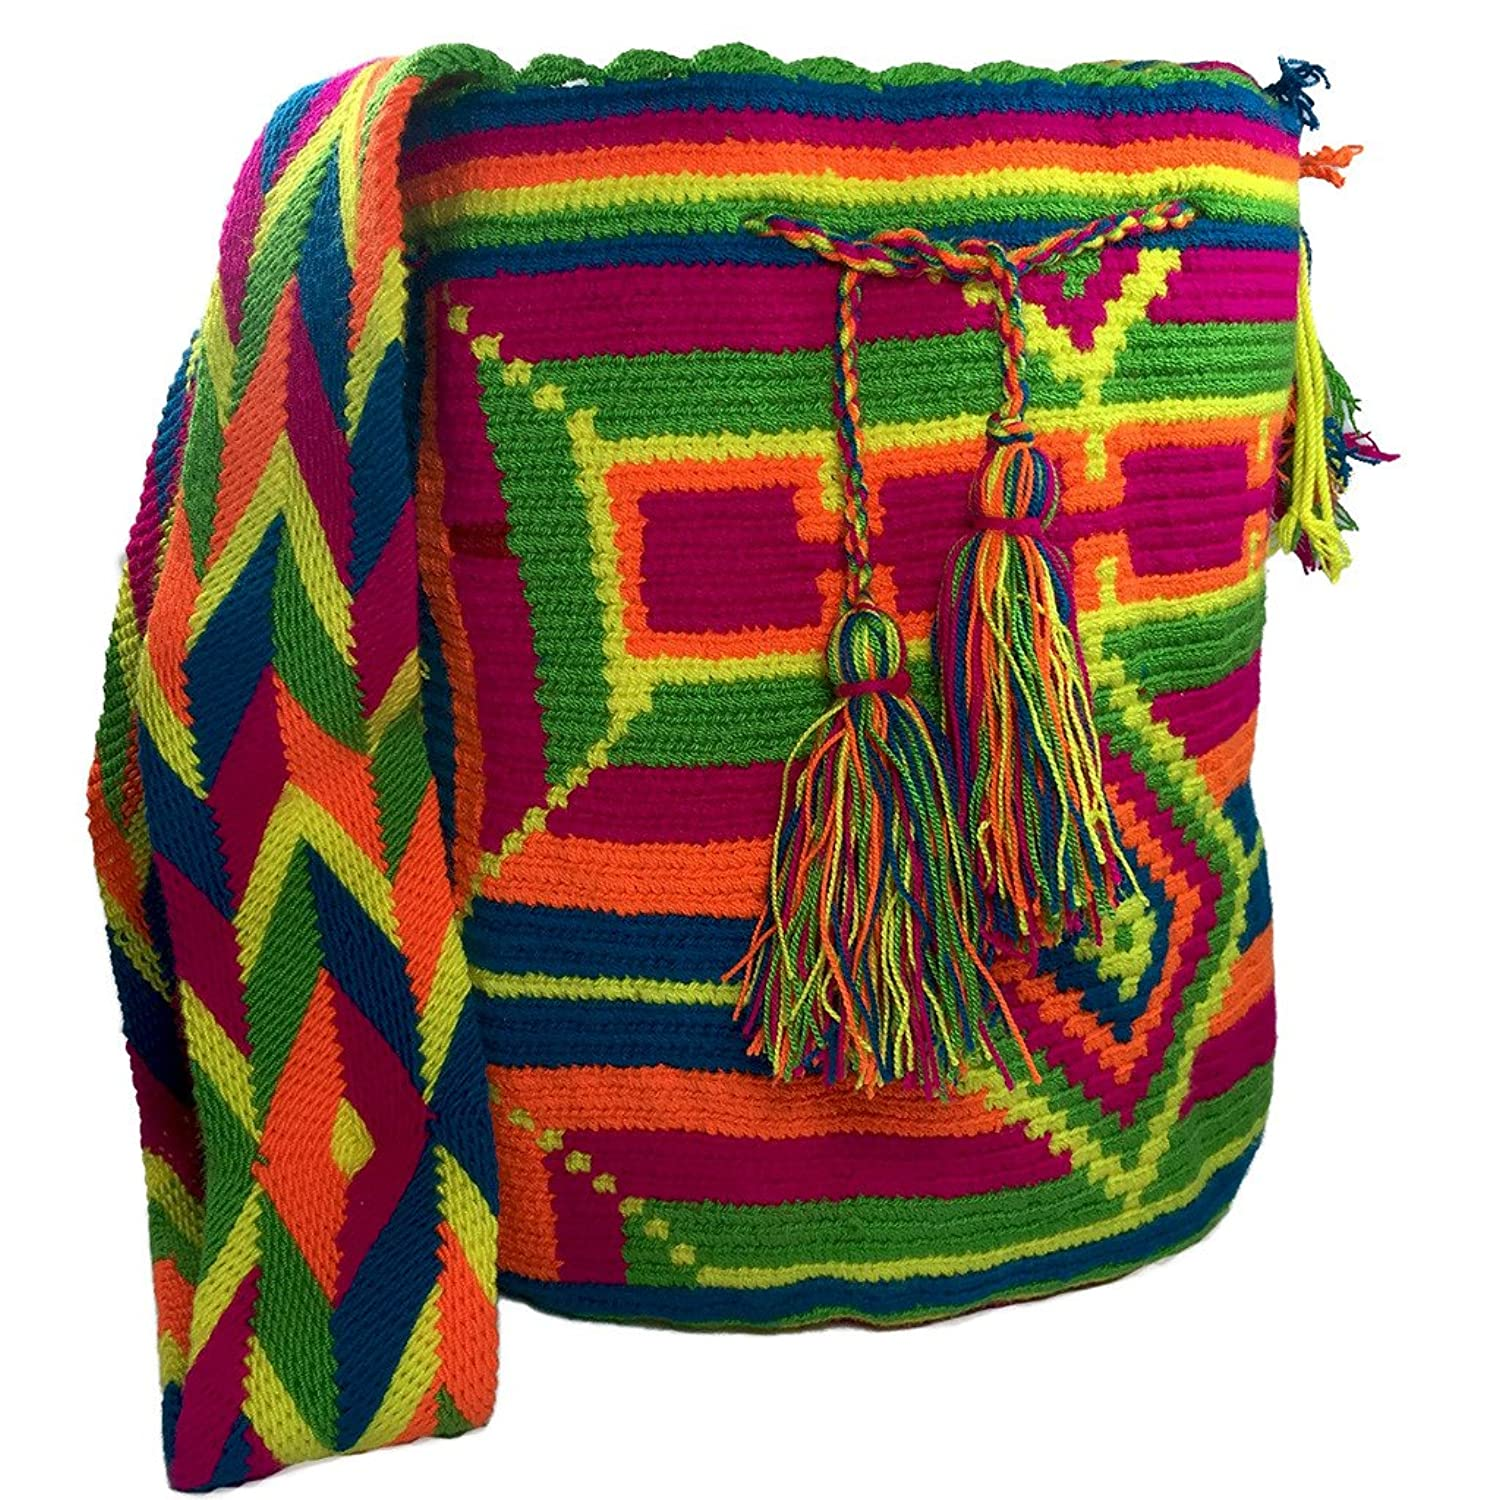 Mochila Wayuu Bag 100% Ethnic Hand Woven Go-anywhere Large Tote Hand Made Bag -Multicolor